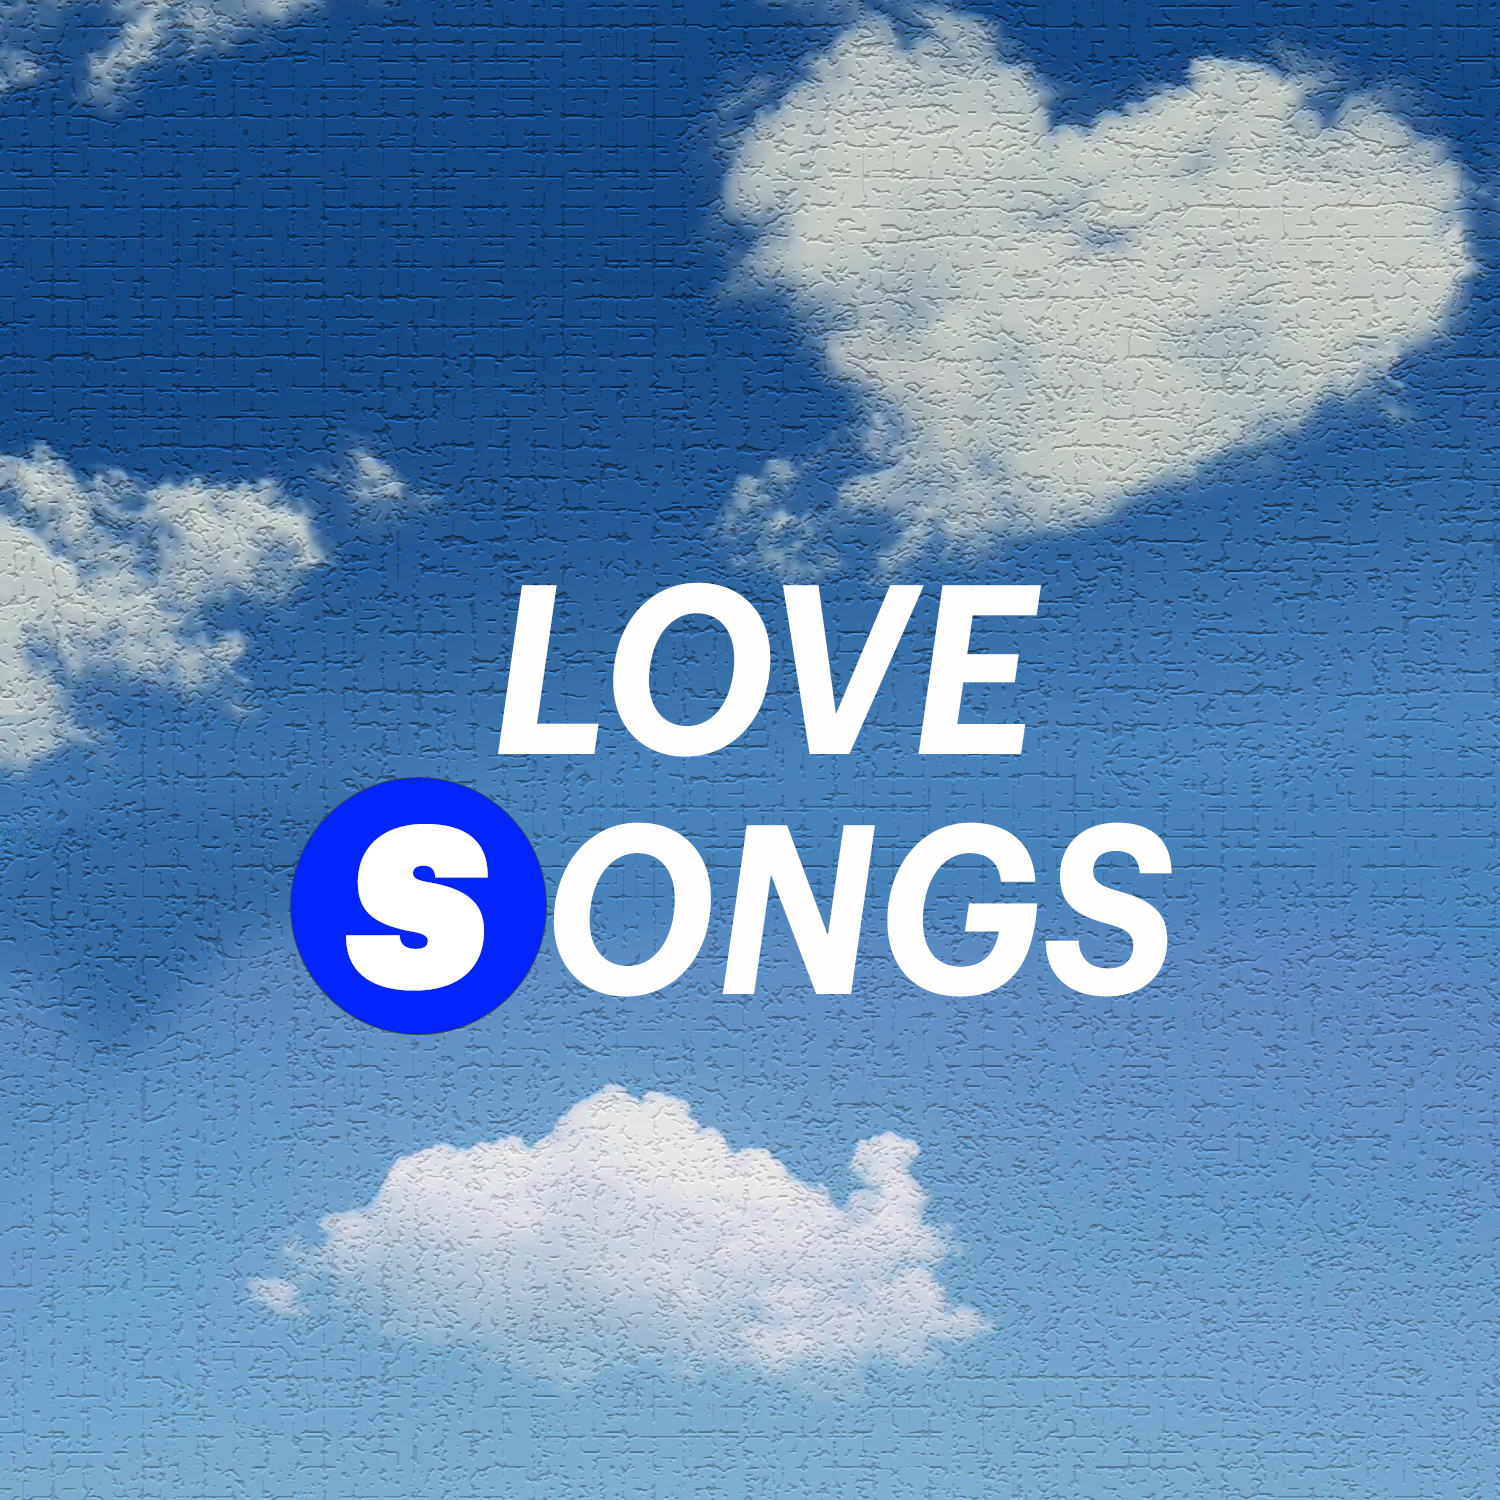 Love song compilation,Songdew